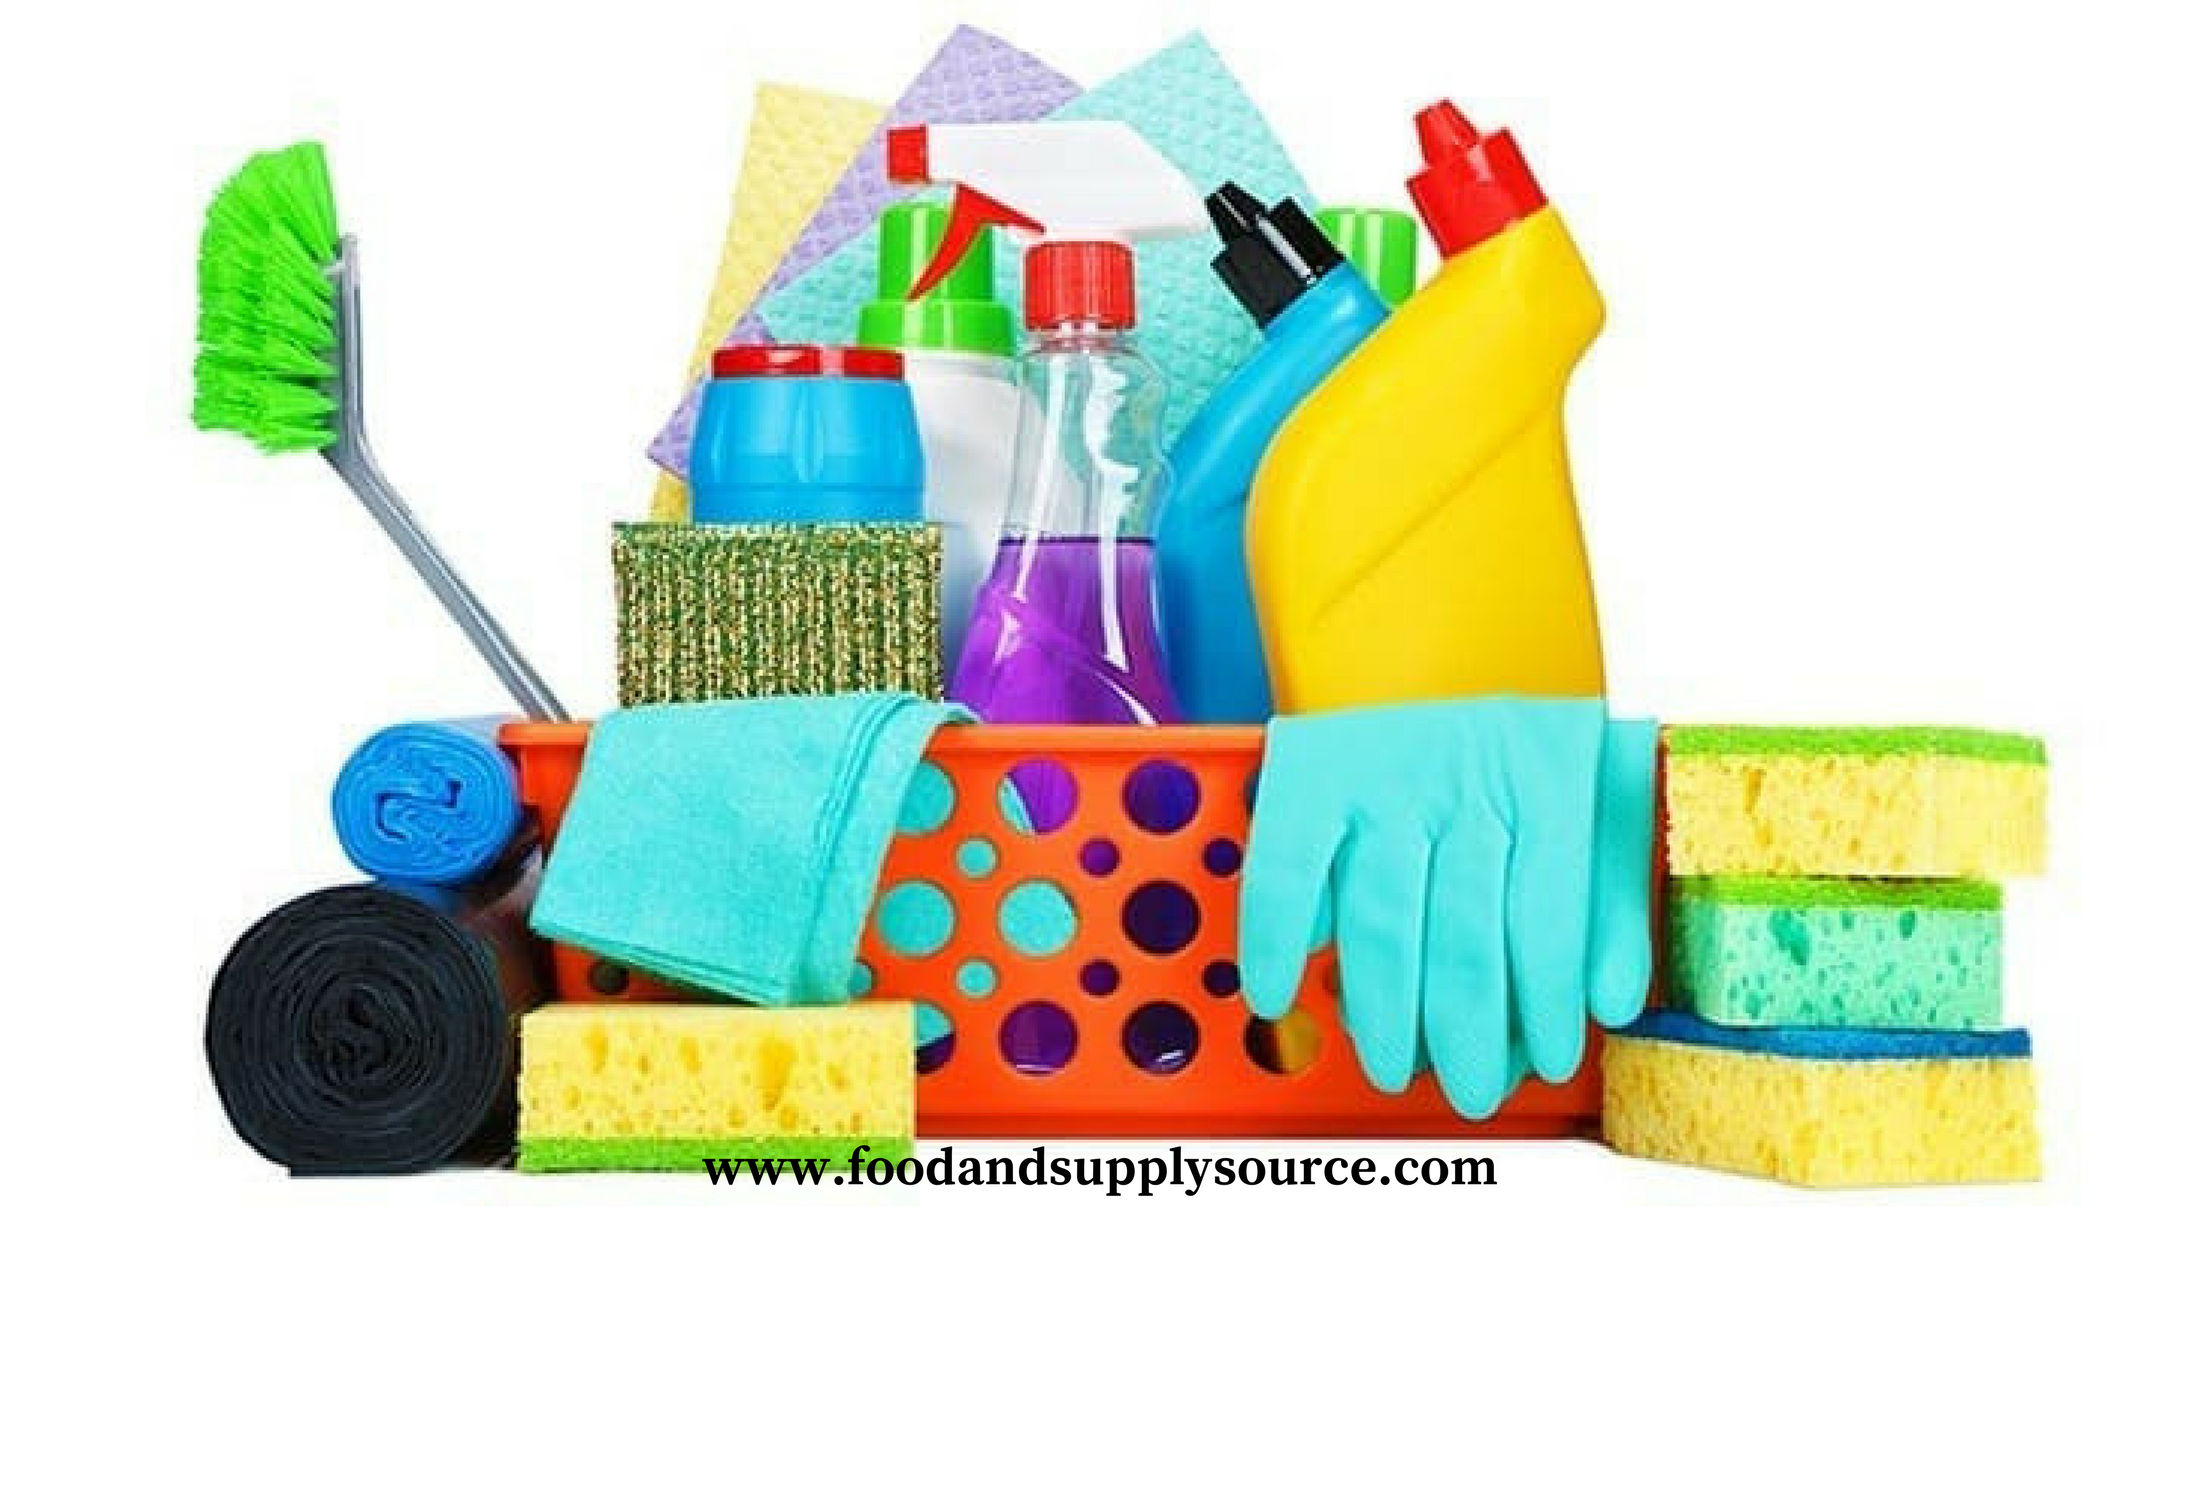 wholesale cleaning supplies ways to lower costs for head home clip art free home clip art free logo